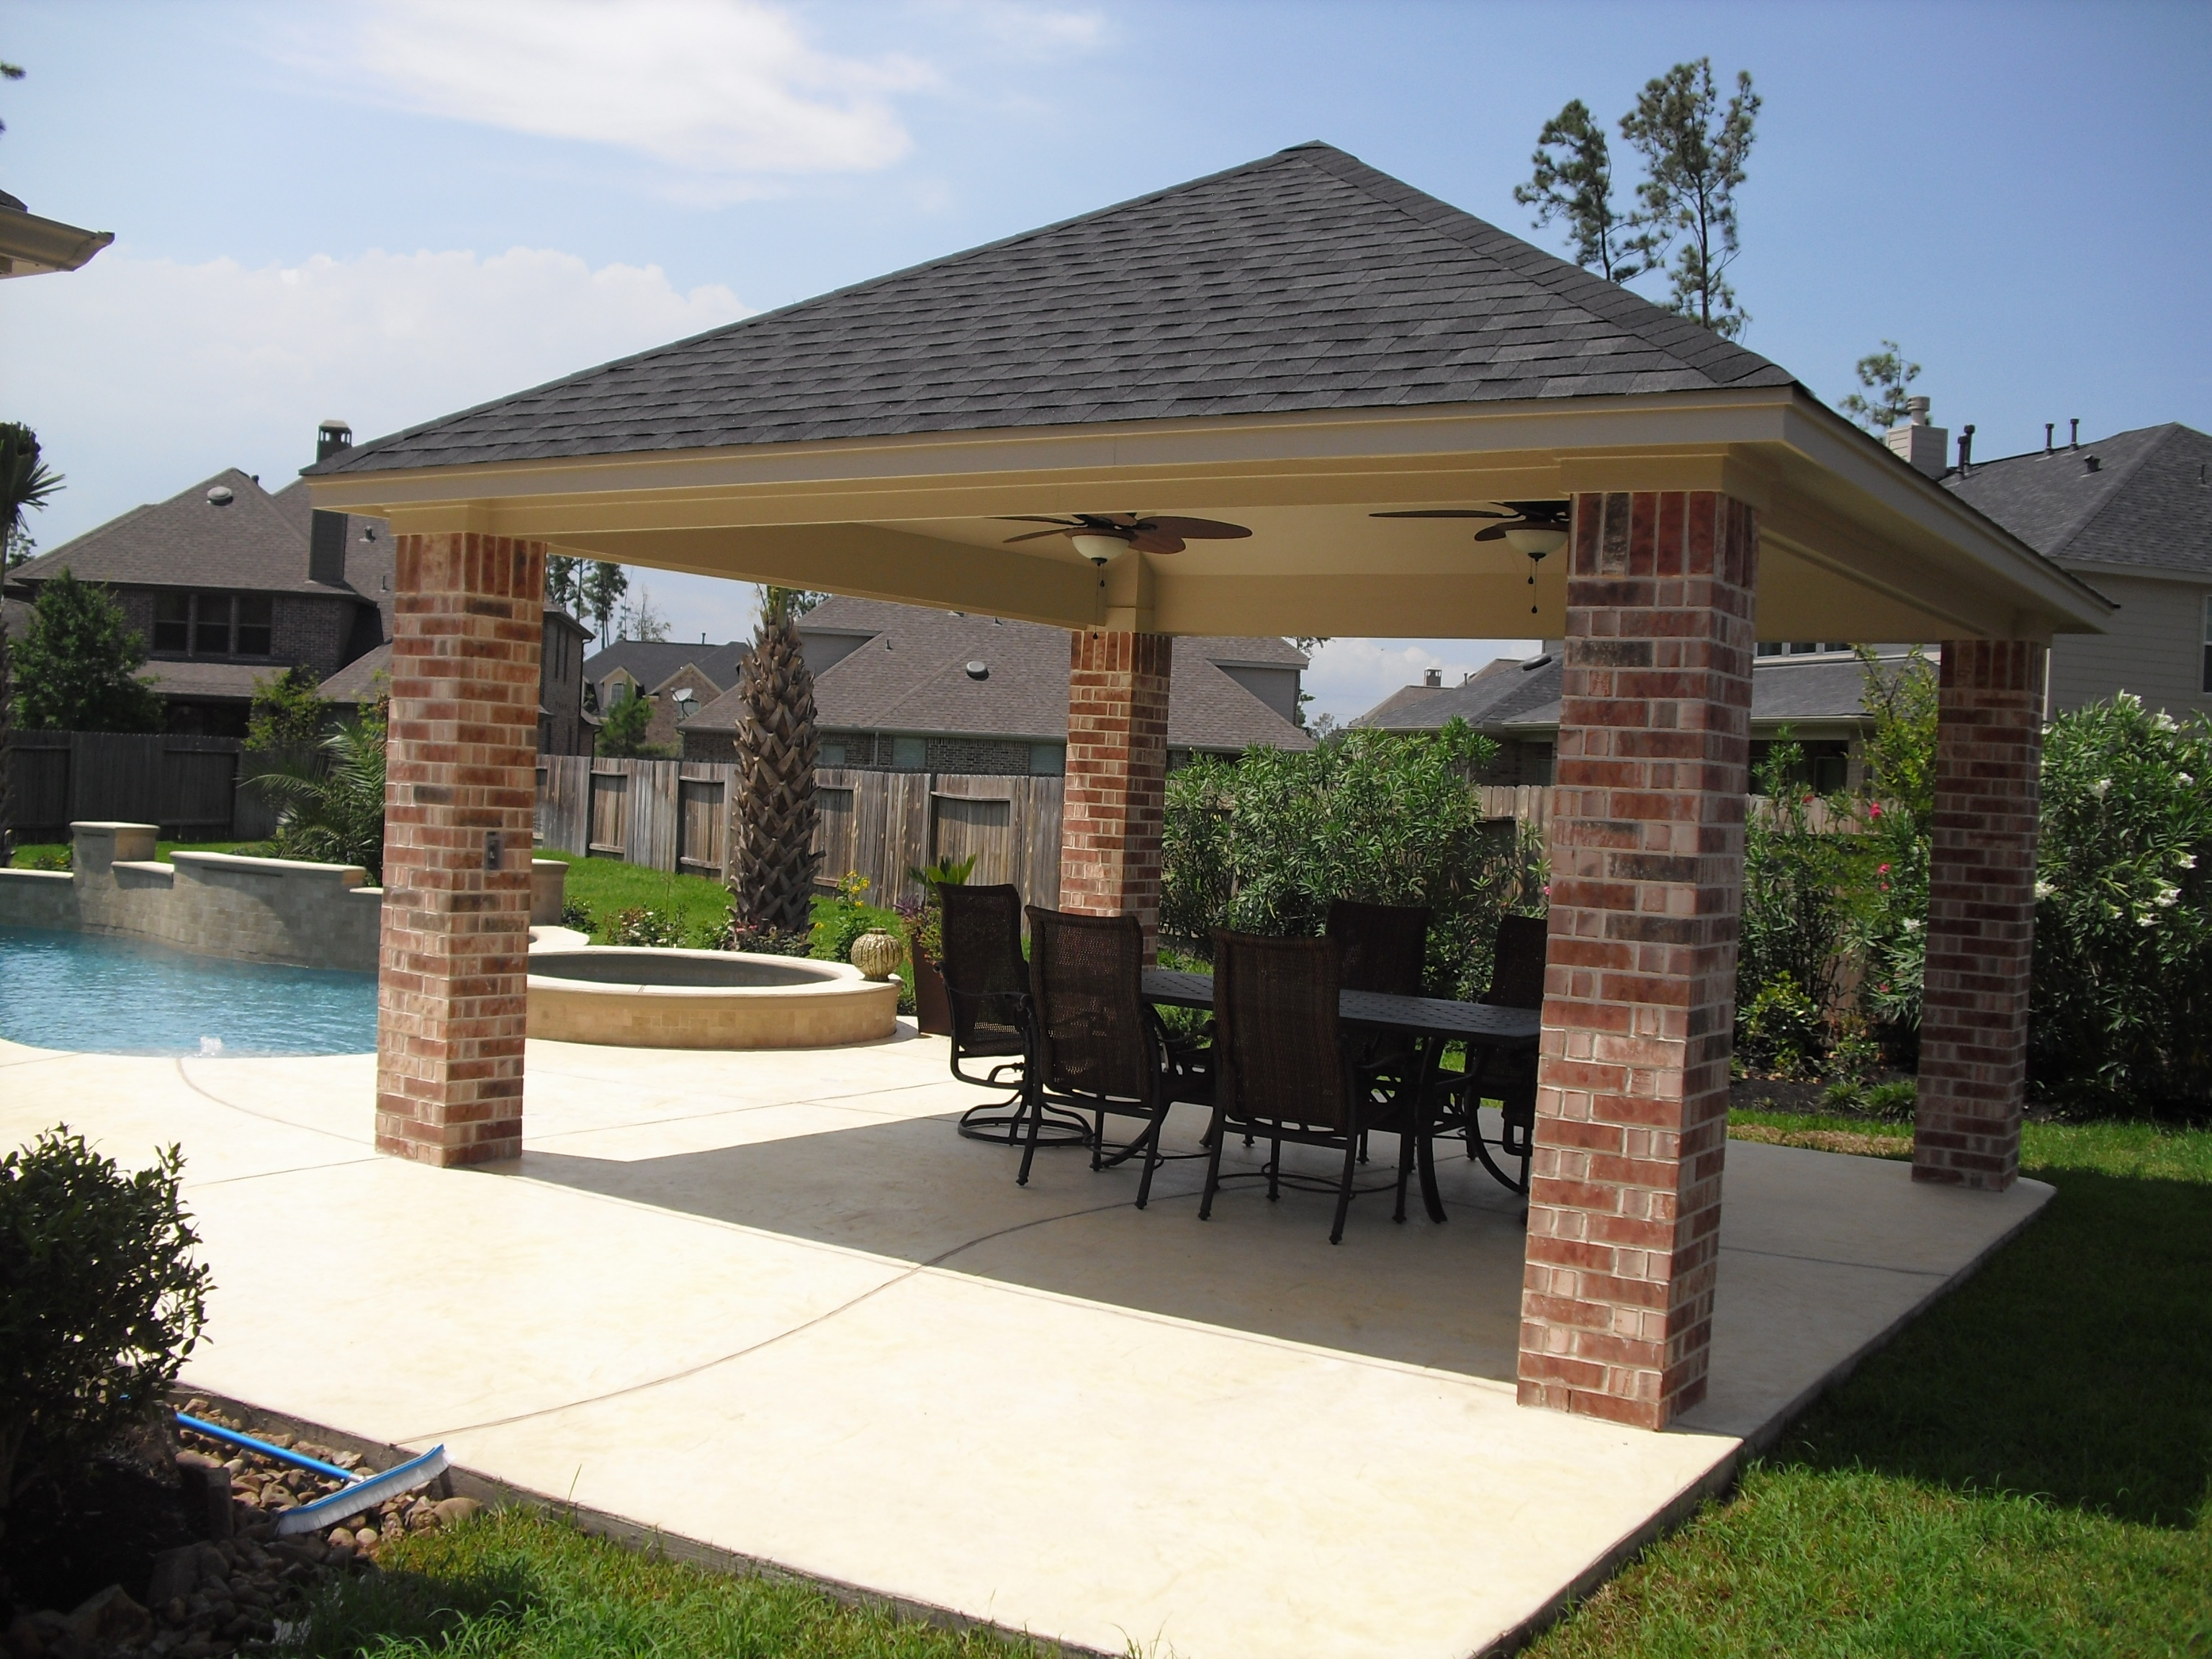 Patio Covers - Custom Patio Structures on Patio Covers Ideas  id=18194